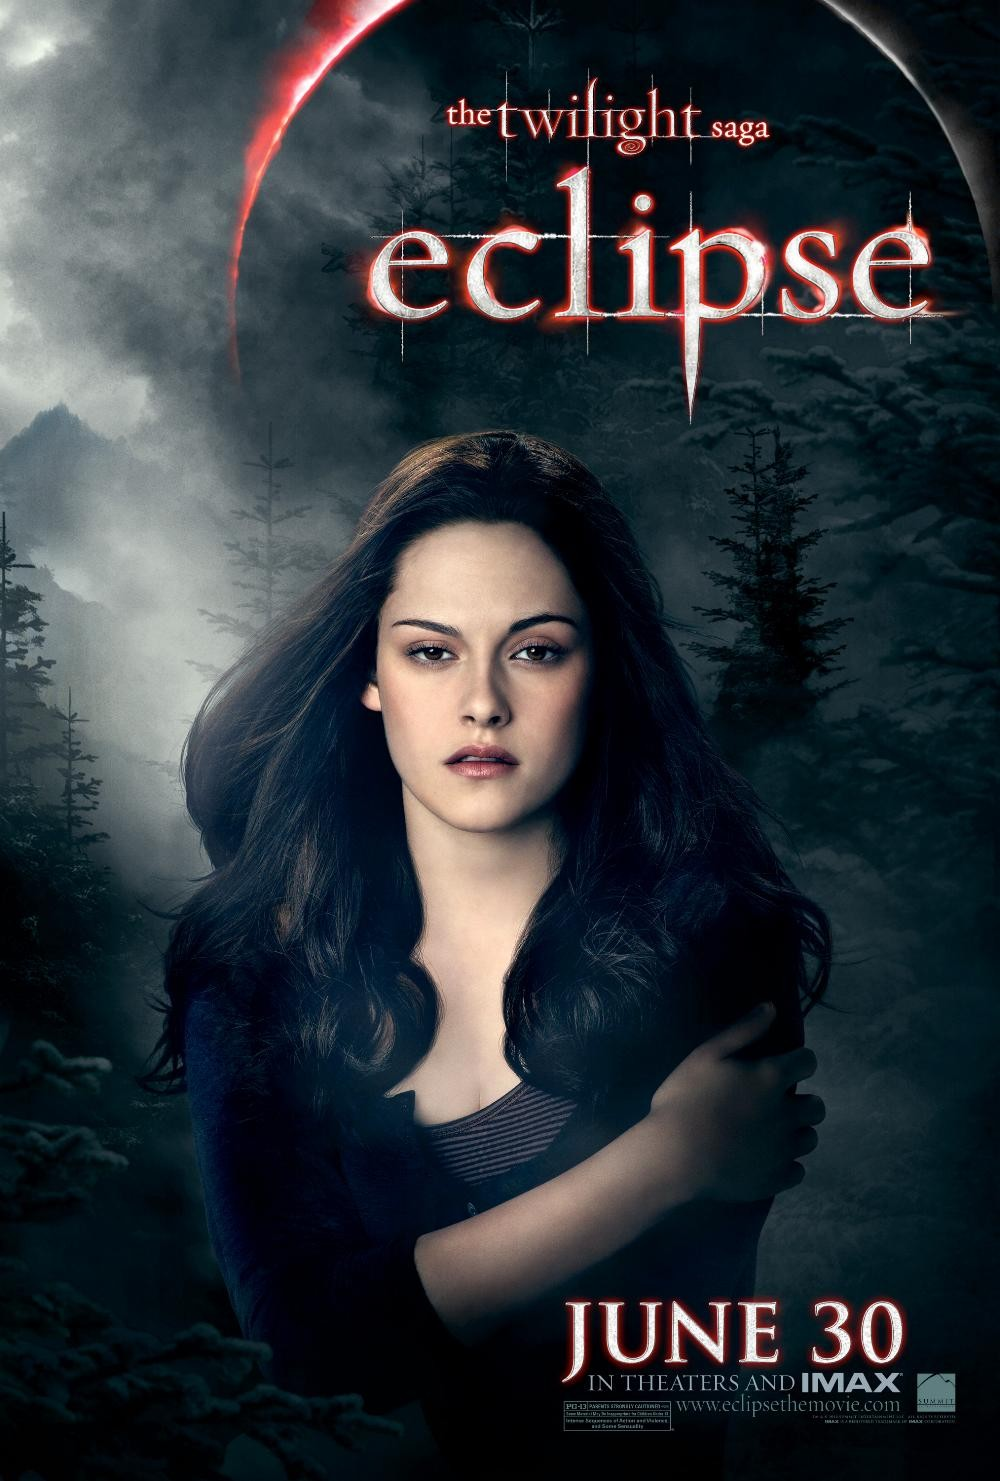 Twilight Saga: Eclipse 3 by Stephenie Meyer (2010, Book, Other, Collector's)